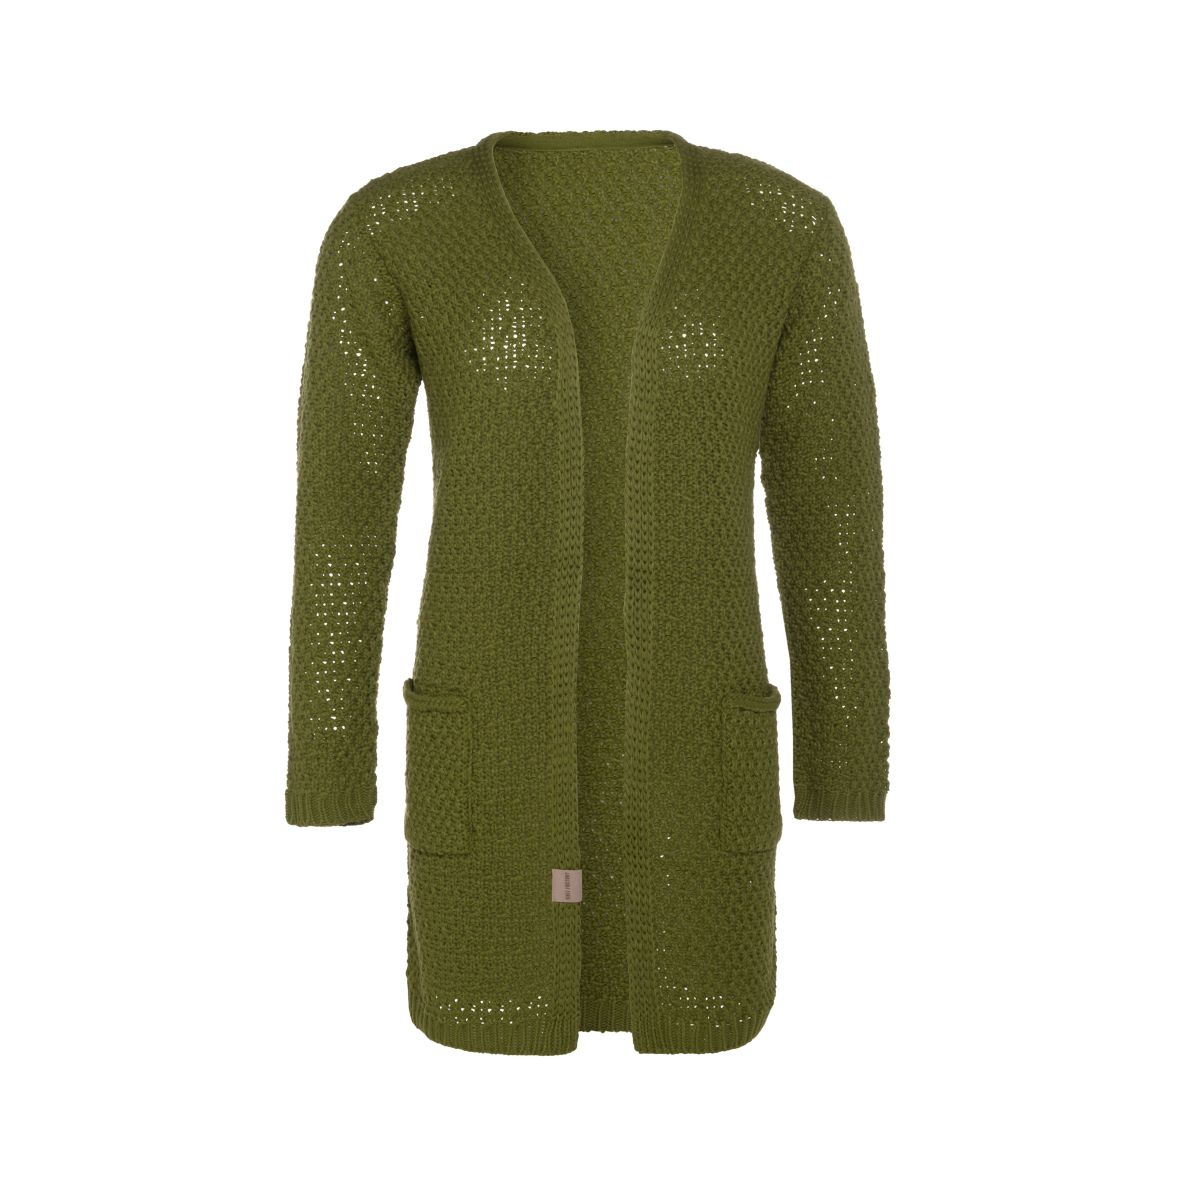 luna knitted cardigan moss green 3638 with side pockets